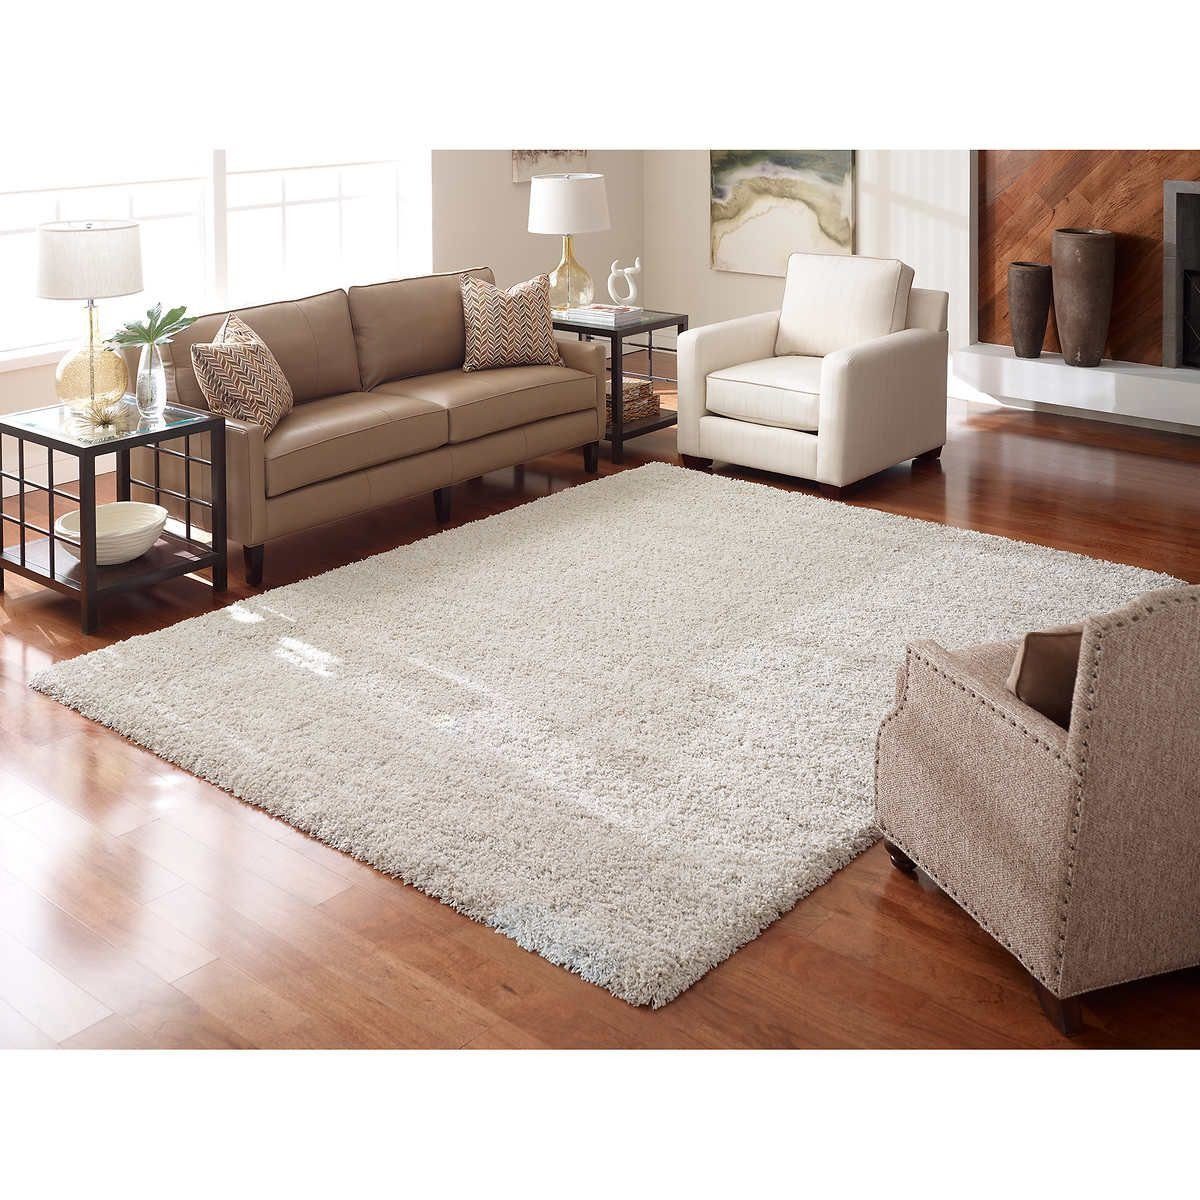 Furry Rugs for Bedroom Fresh Thomasville Marketplace Luxury Shag Rugs